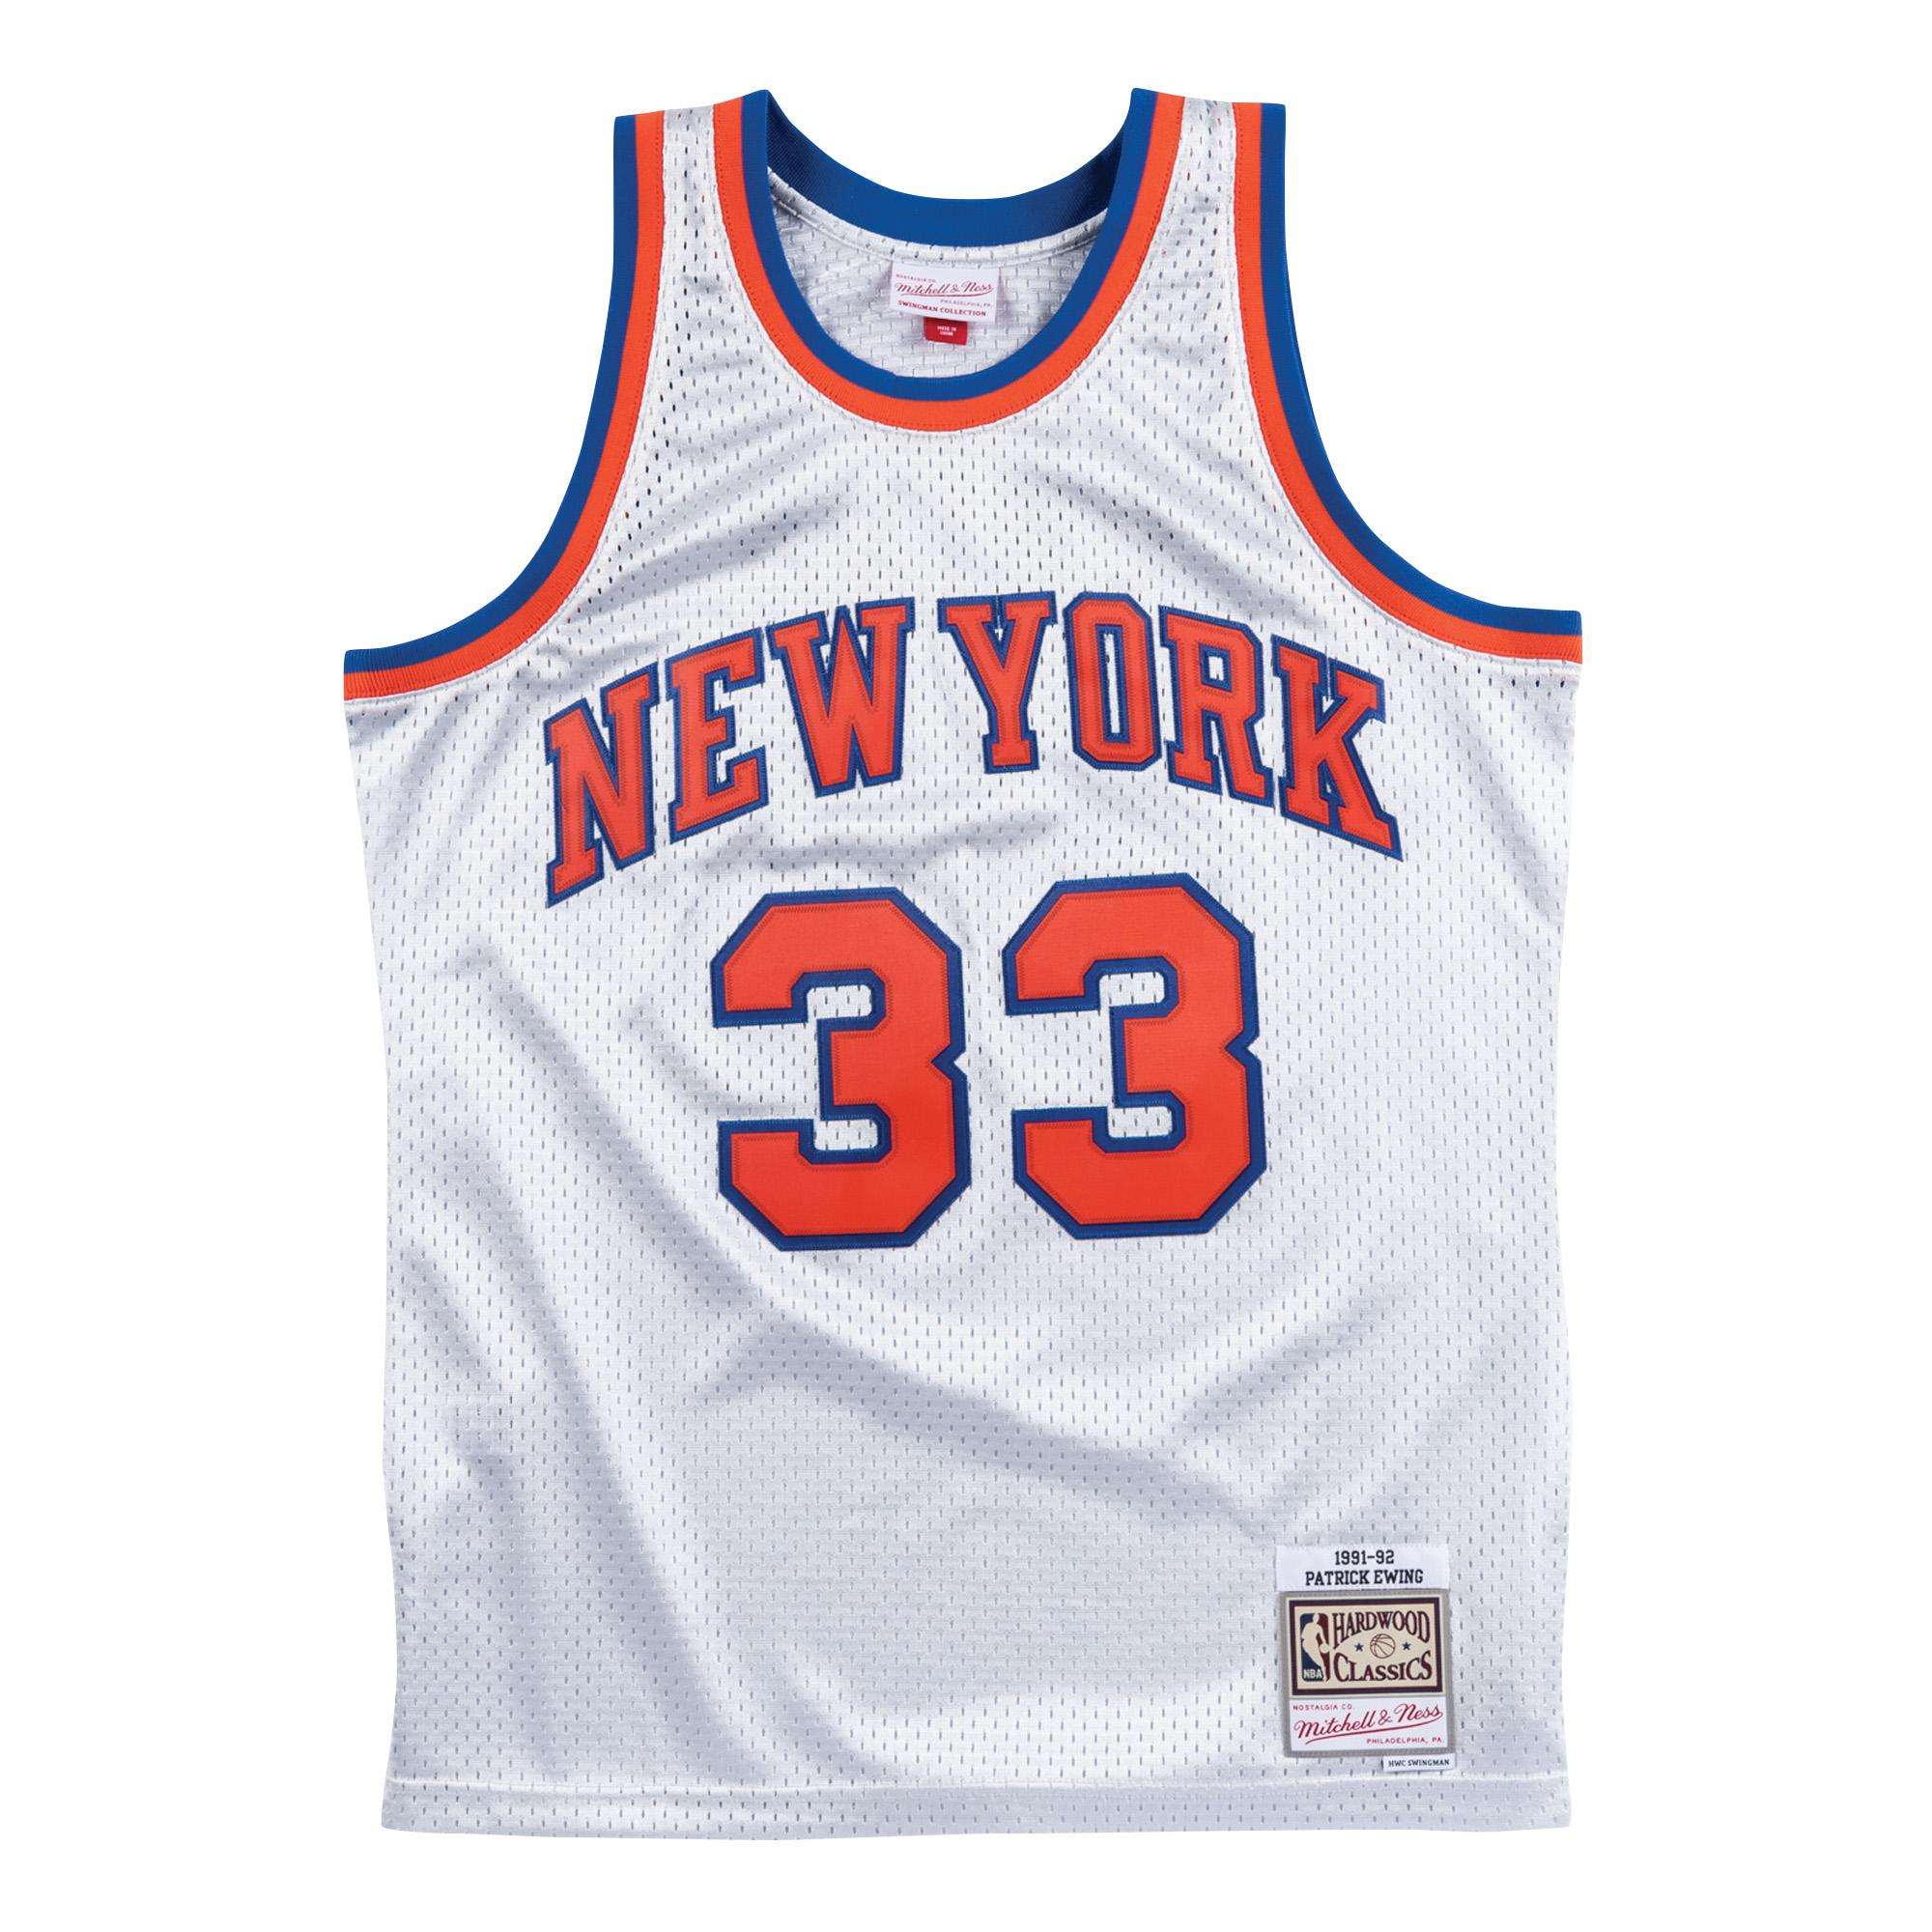 7610c05be20b Platinum Swingman Jersey - Patrick Ewing New York Knicks